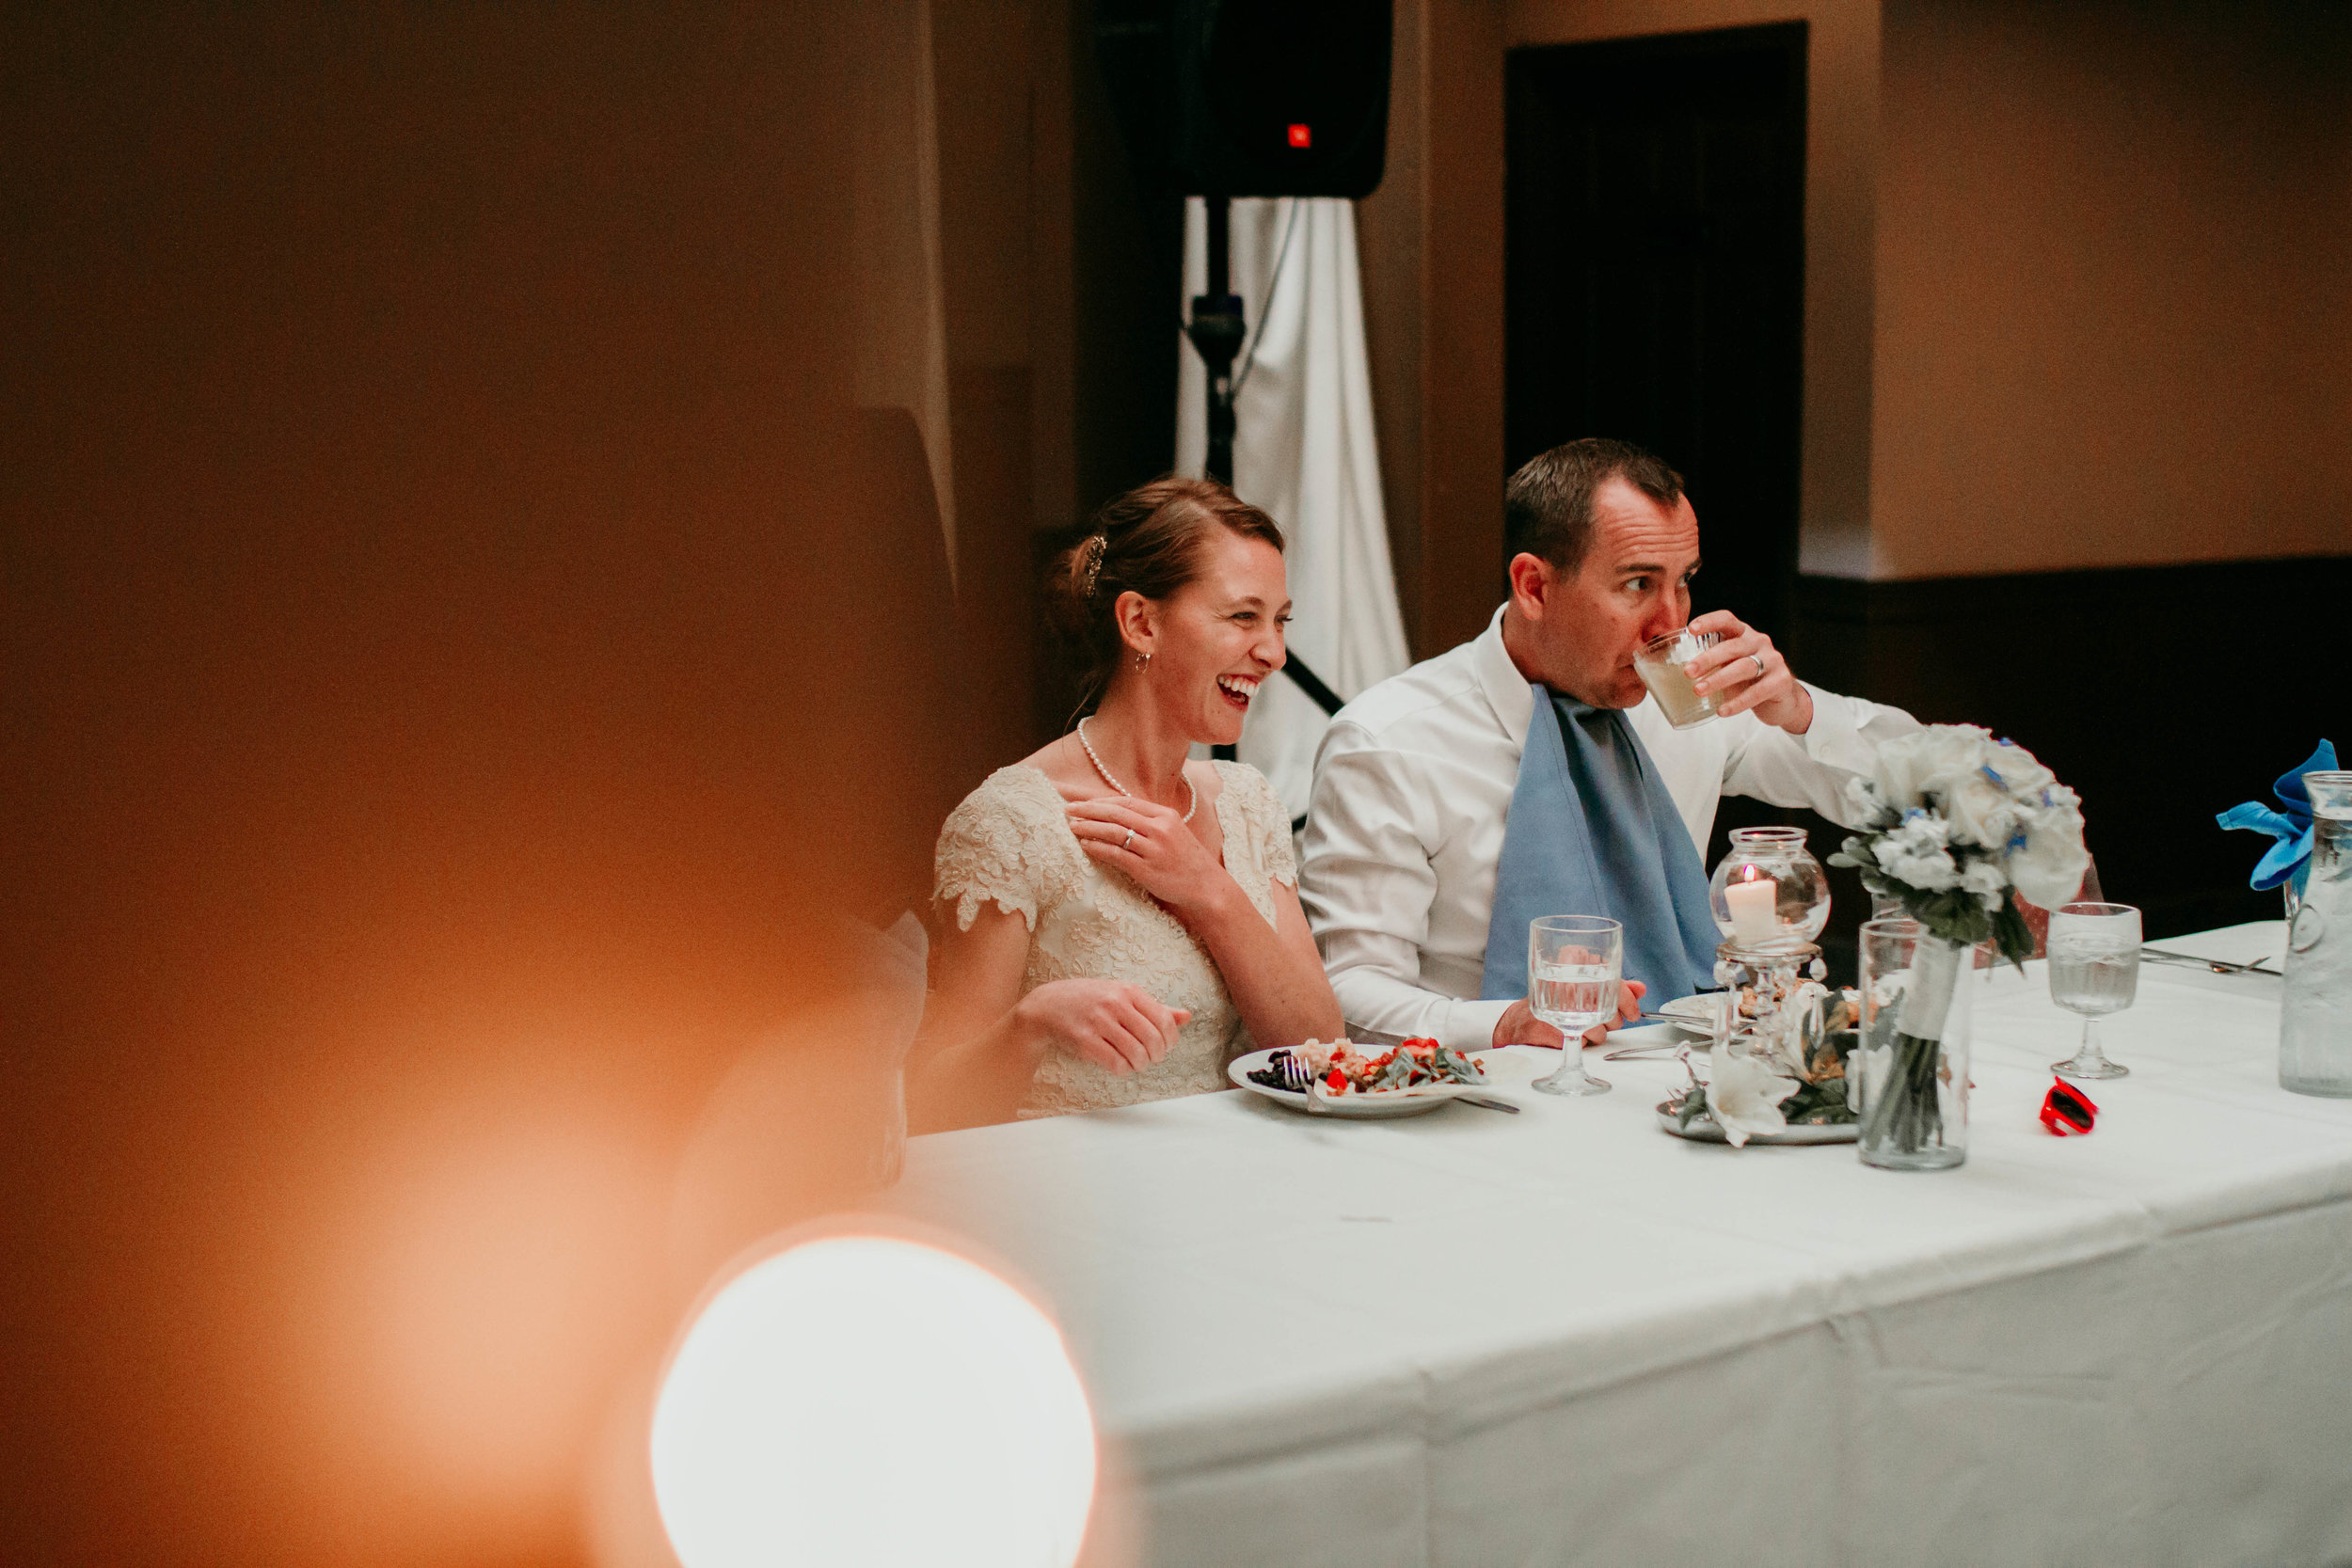 Bert & Lauren's North Kansas City Spring Wedding | Hannahill Photography | Raleigh Durham Photographer | North Carolina Wedding Photography | Family Photographer | Wedding photographer | the bride and groom enjoy their first meal as husband and wife